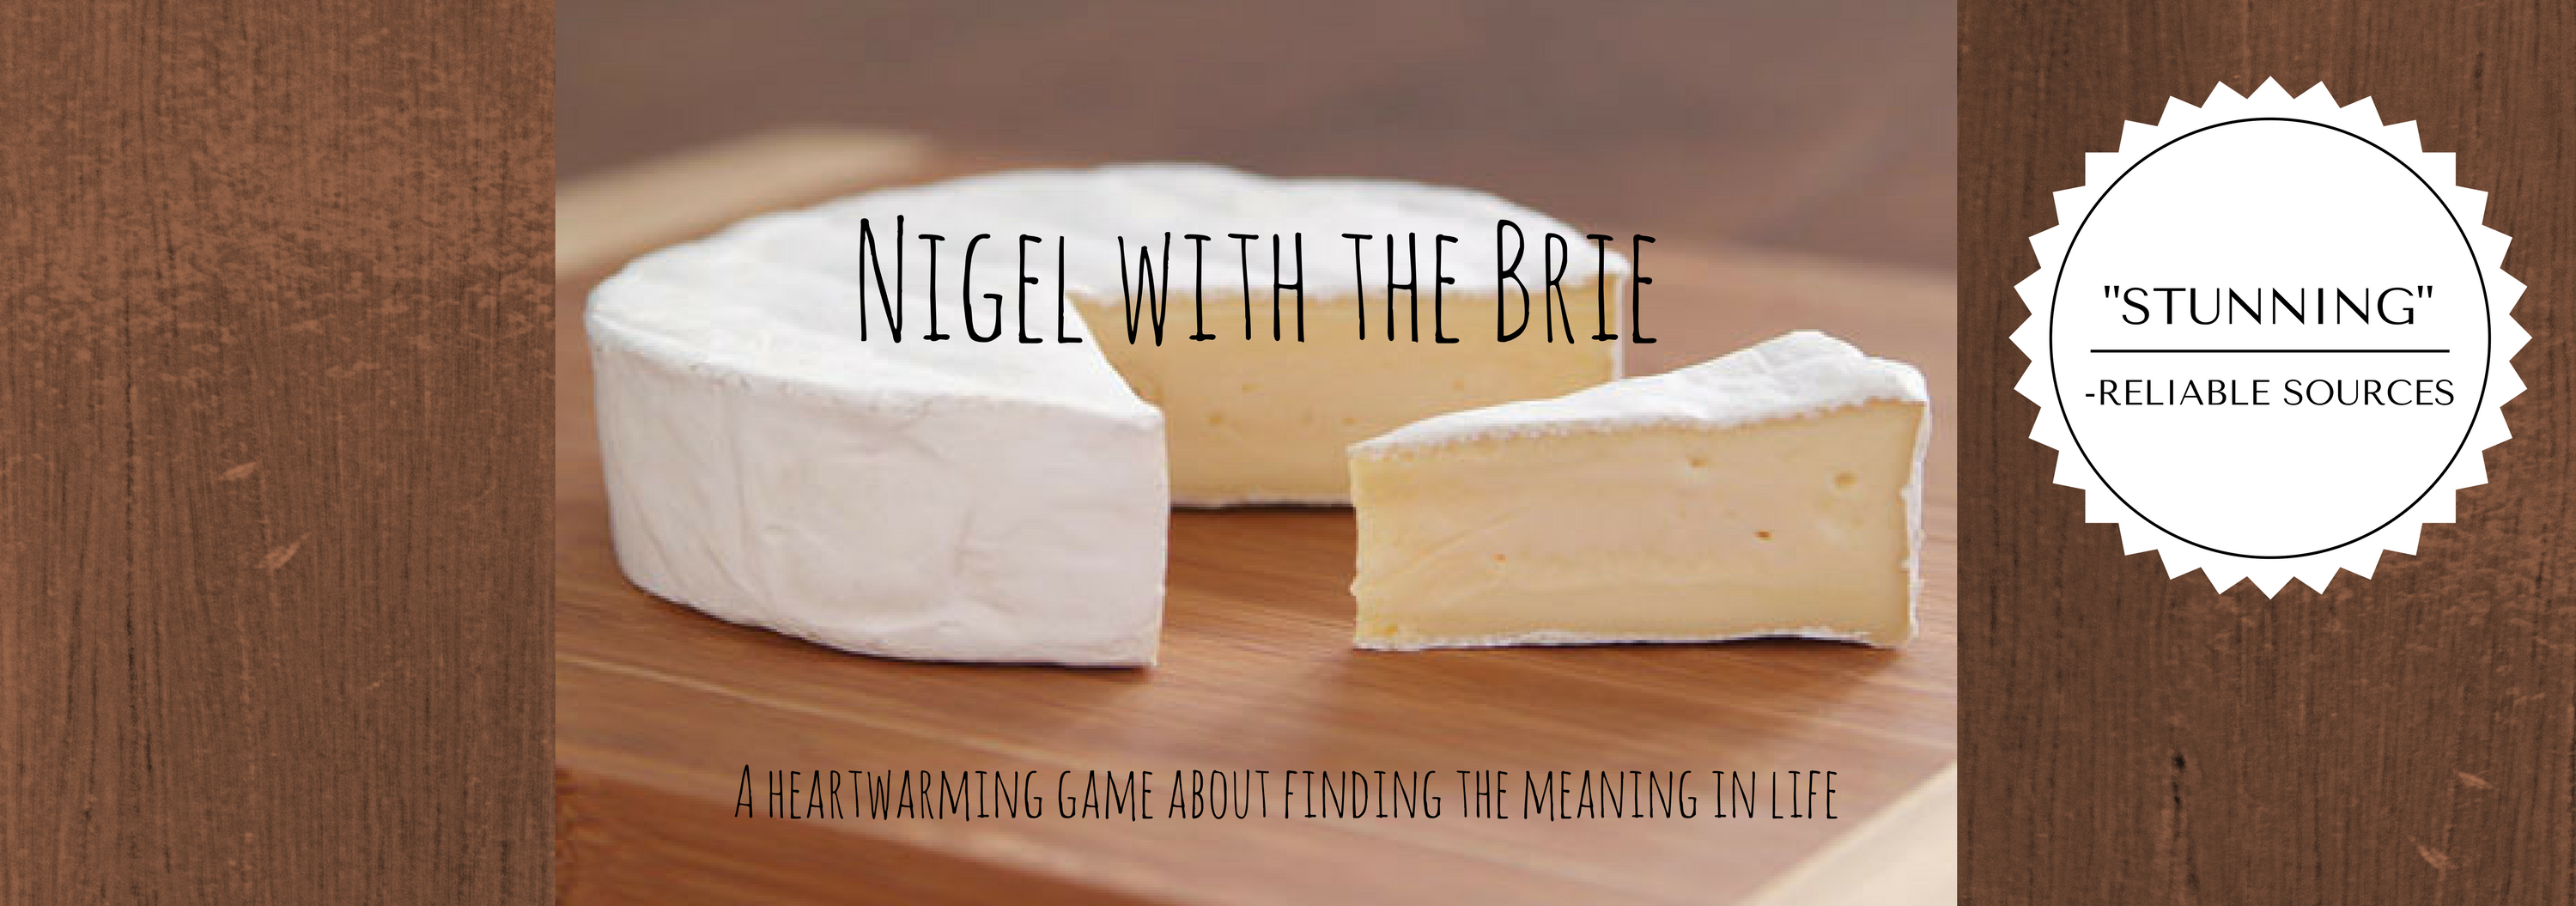 Nigel with the brie